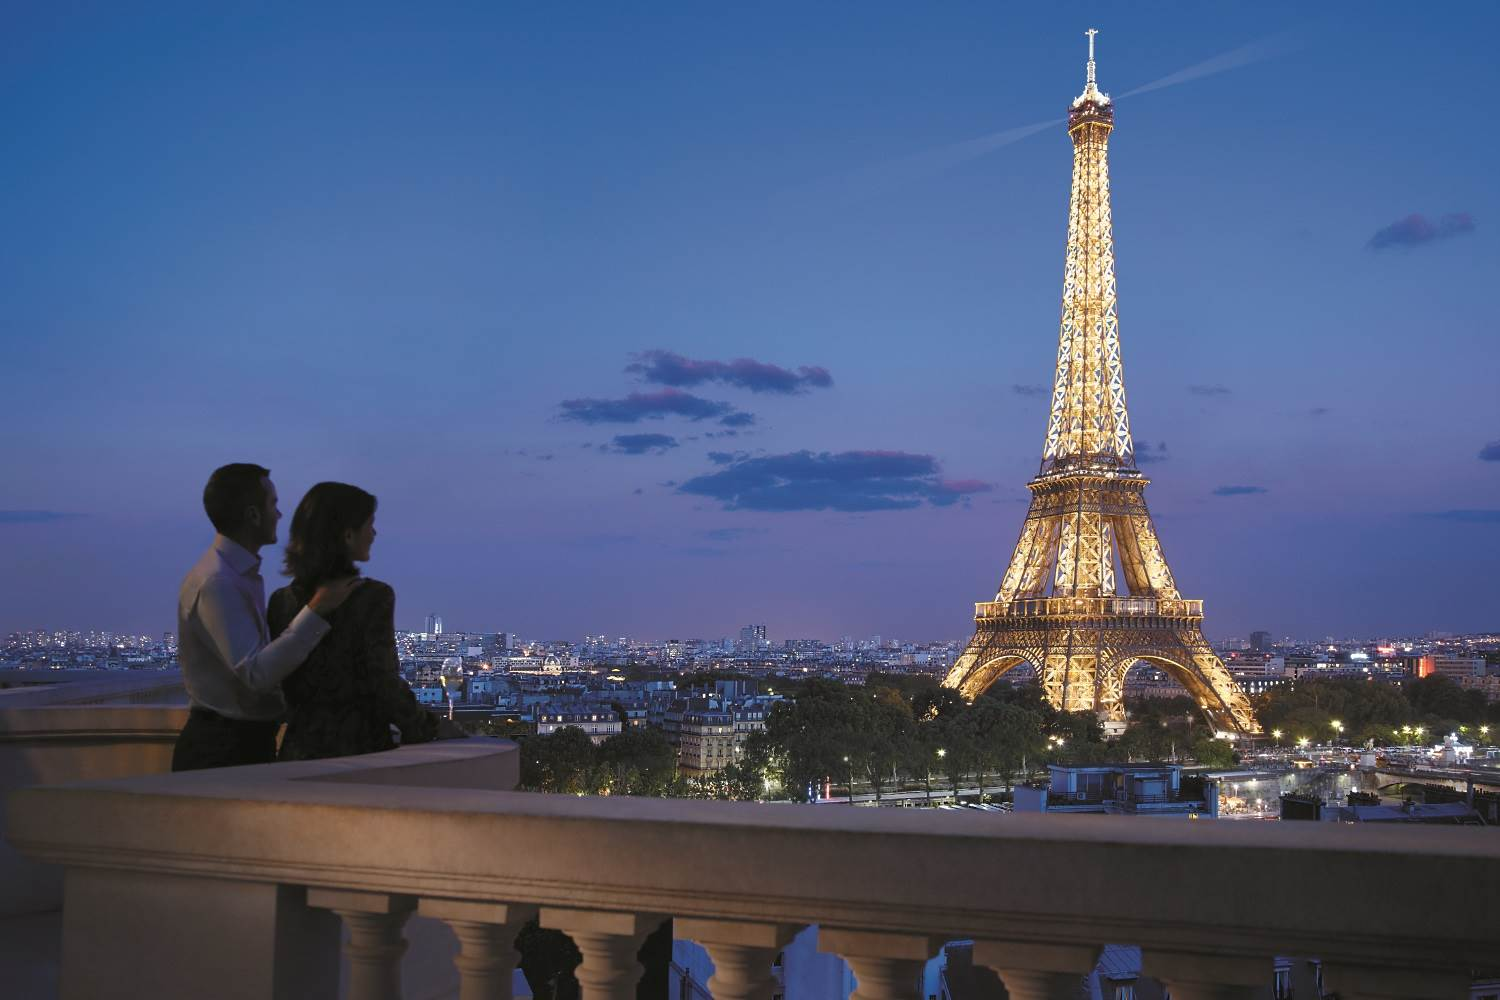 Best Hotels Near Eiffel Tower, Paris, France - TripAdvisor